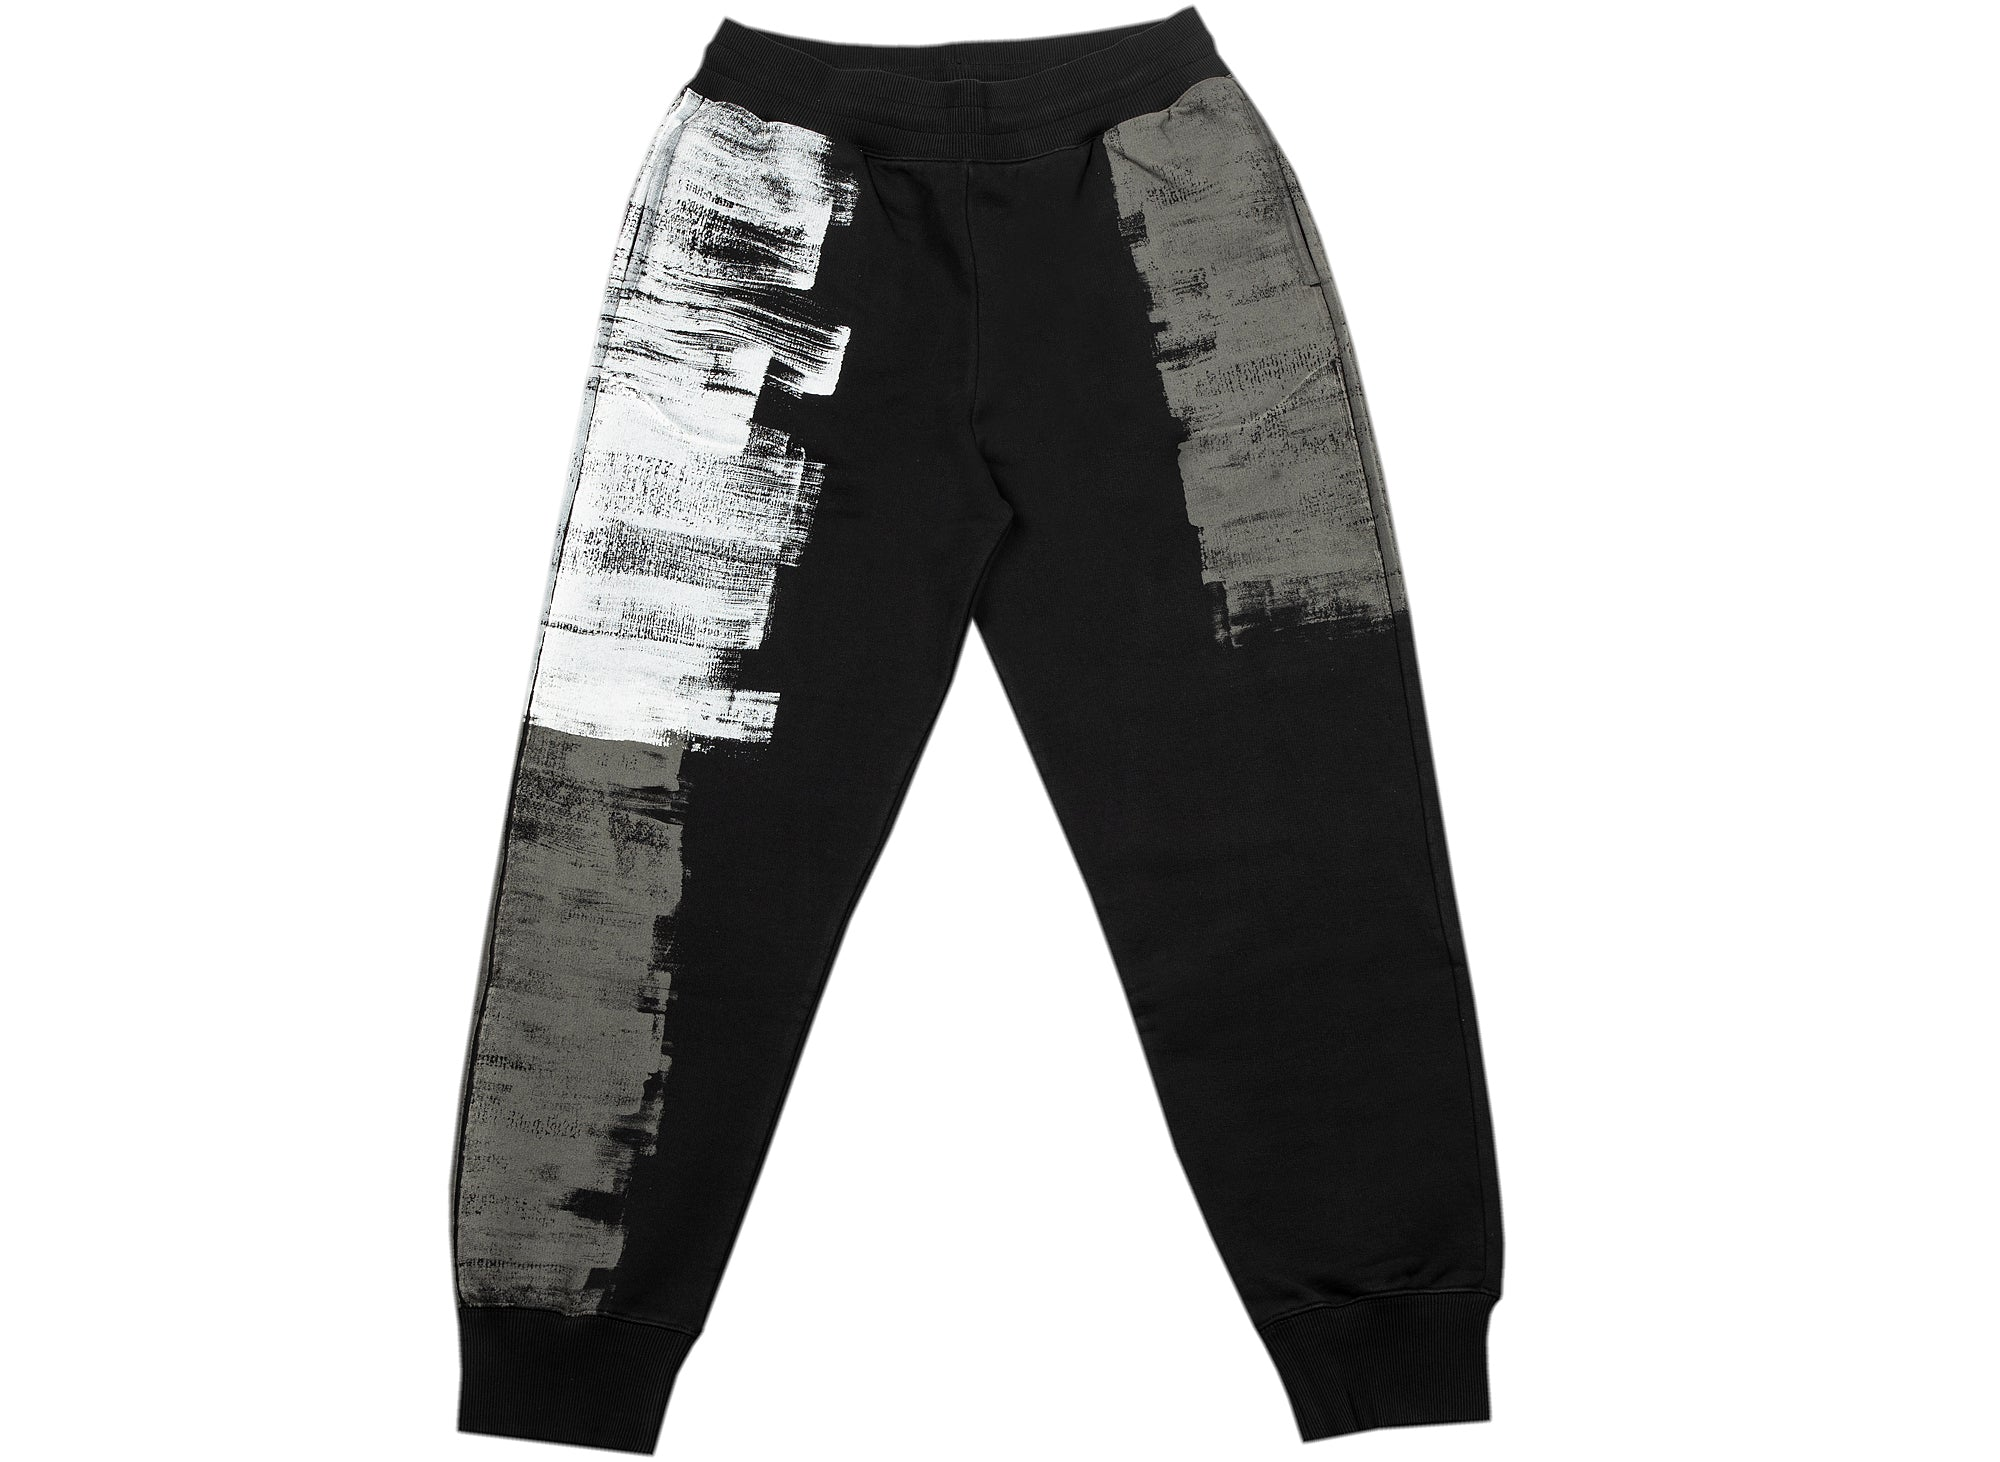 A-COLD-WALL* Brush Stroke Sweatpants in Black xld